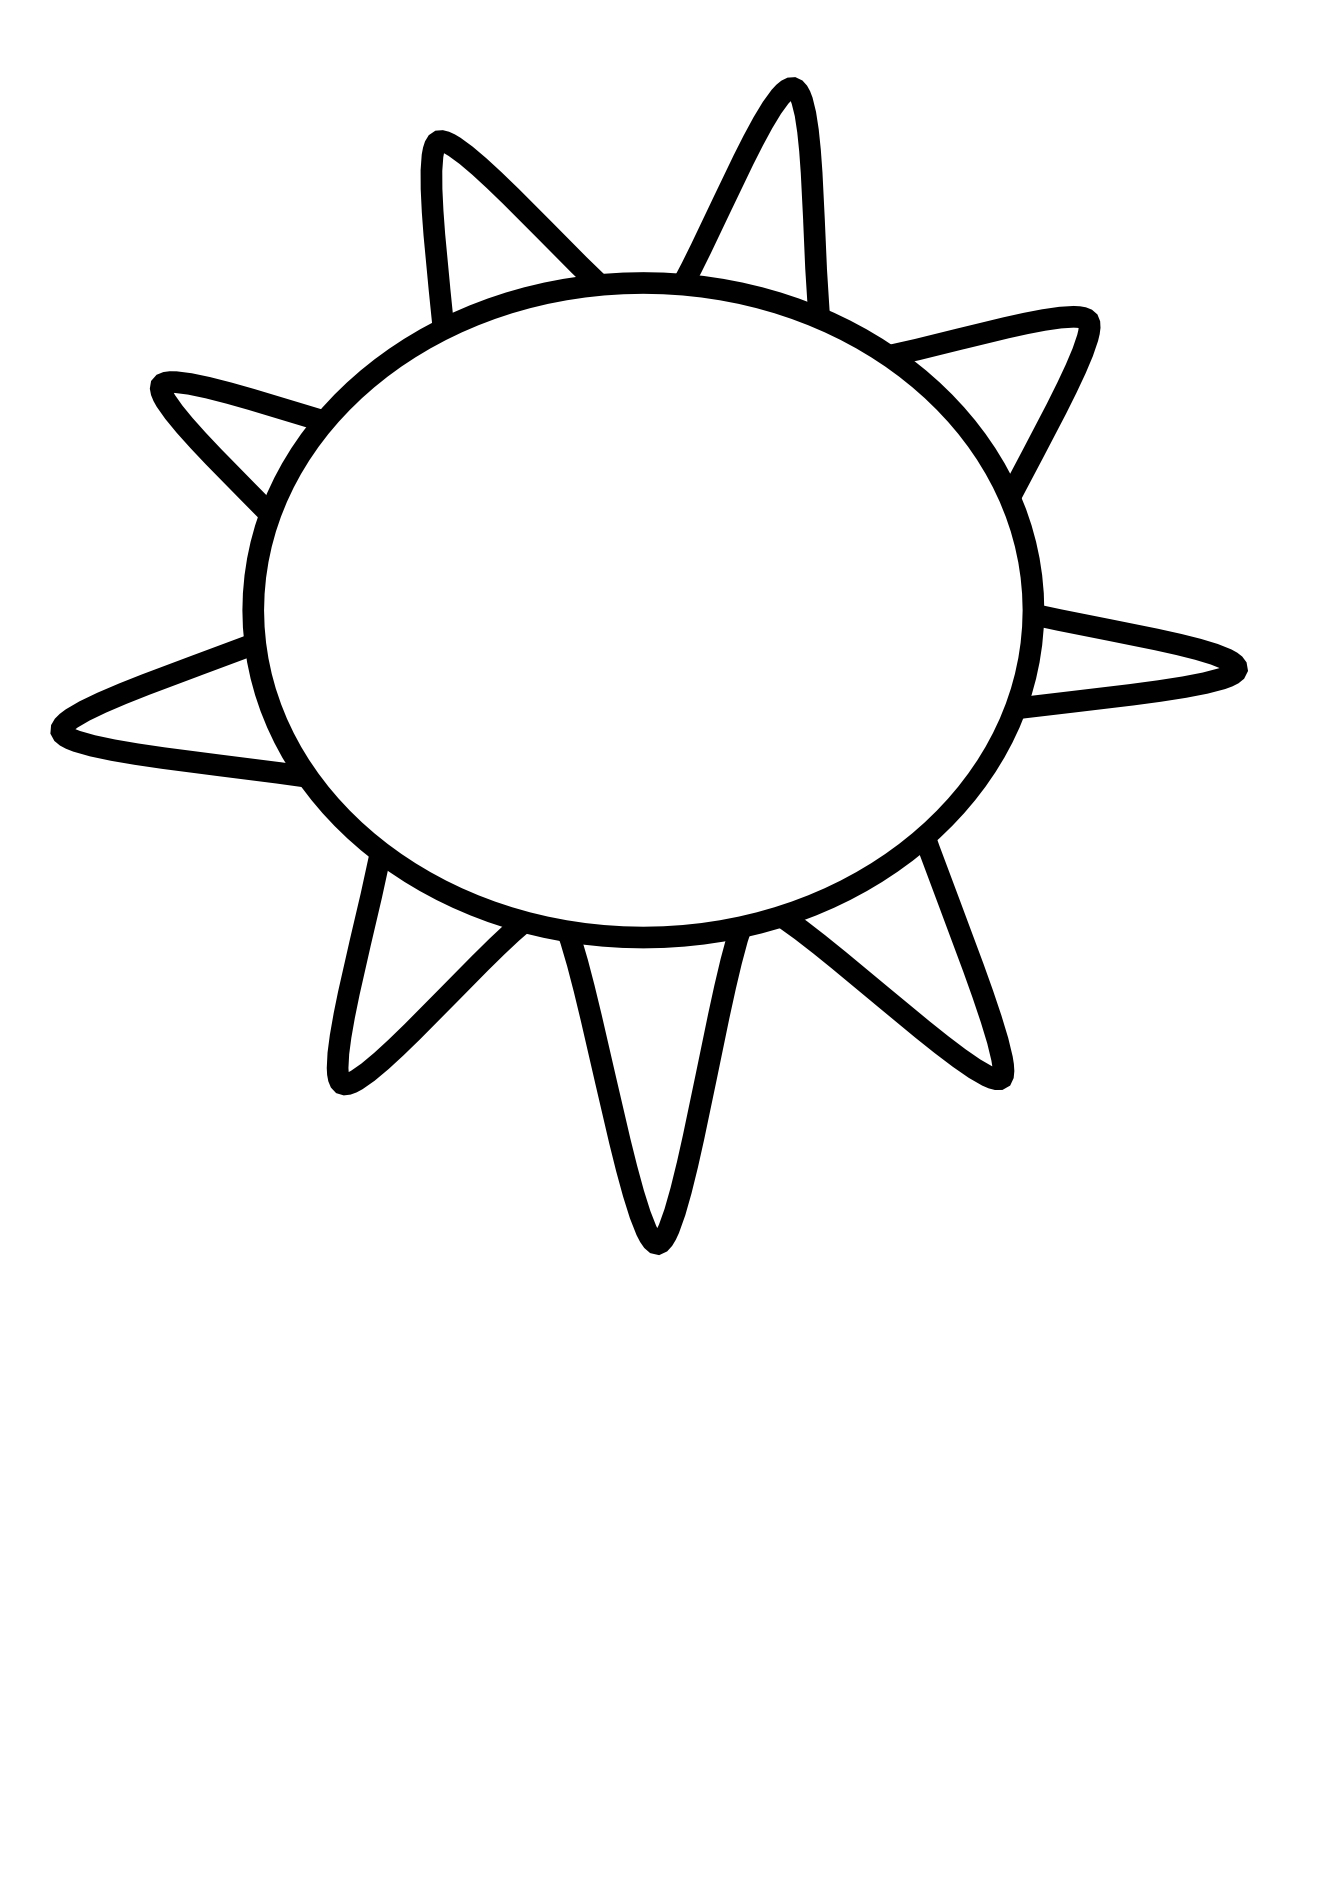 clipart sun outline clipart panda free clipart images sun clipart black and white png sun clip art black and white design